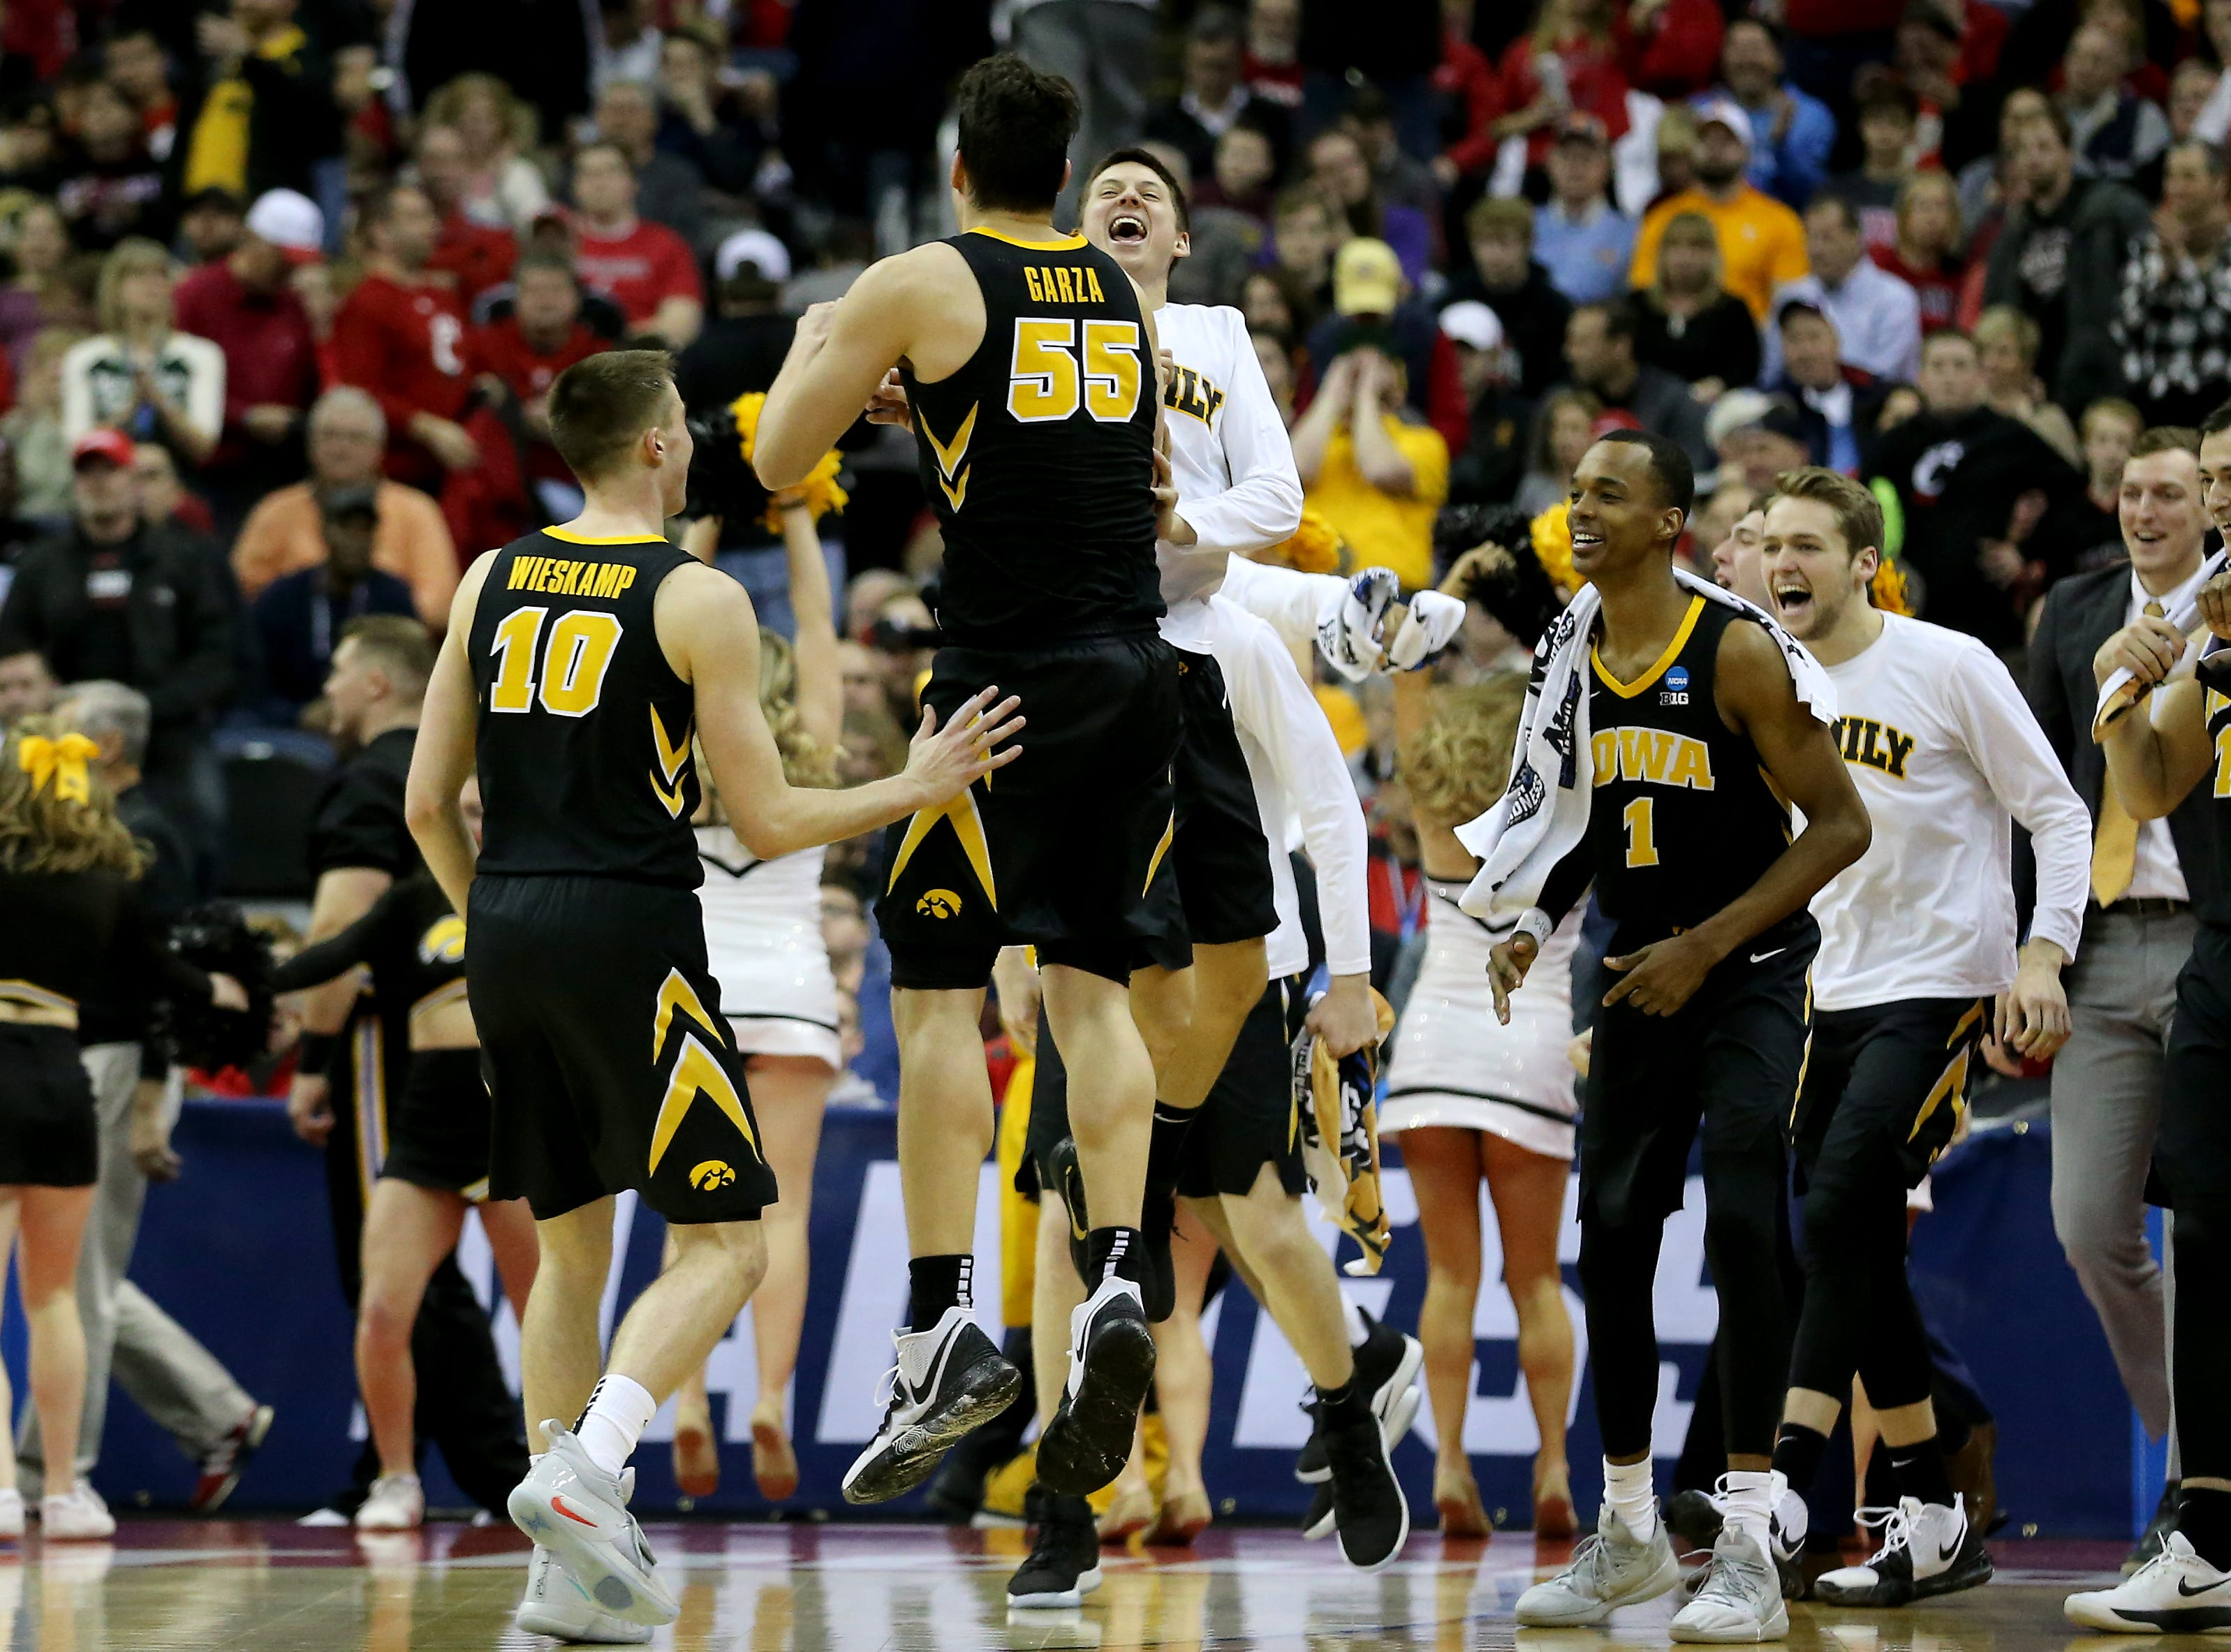 Iowa Hawkeyes forward Luka Garza (55) celebrates the win of the NCAA Tournament Round of 64 game, Friday, March 22, 2019, at Nationwide Arena in Columbus, Ohio. Cincinnati Bearcats lost to the Iowa Hawkeyes 79-72.